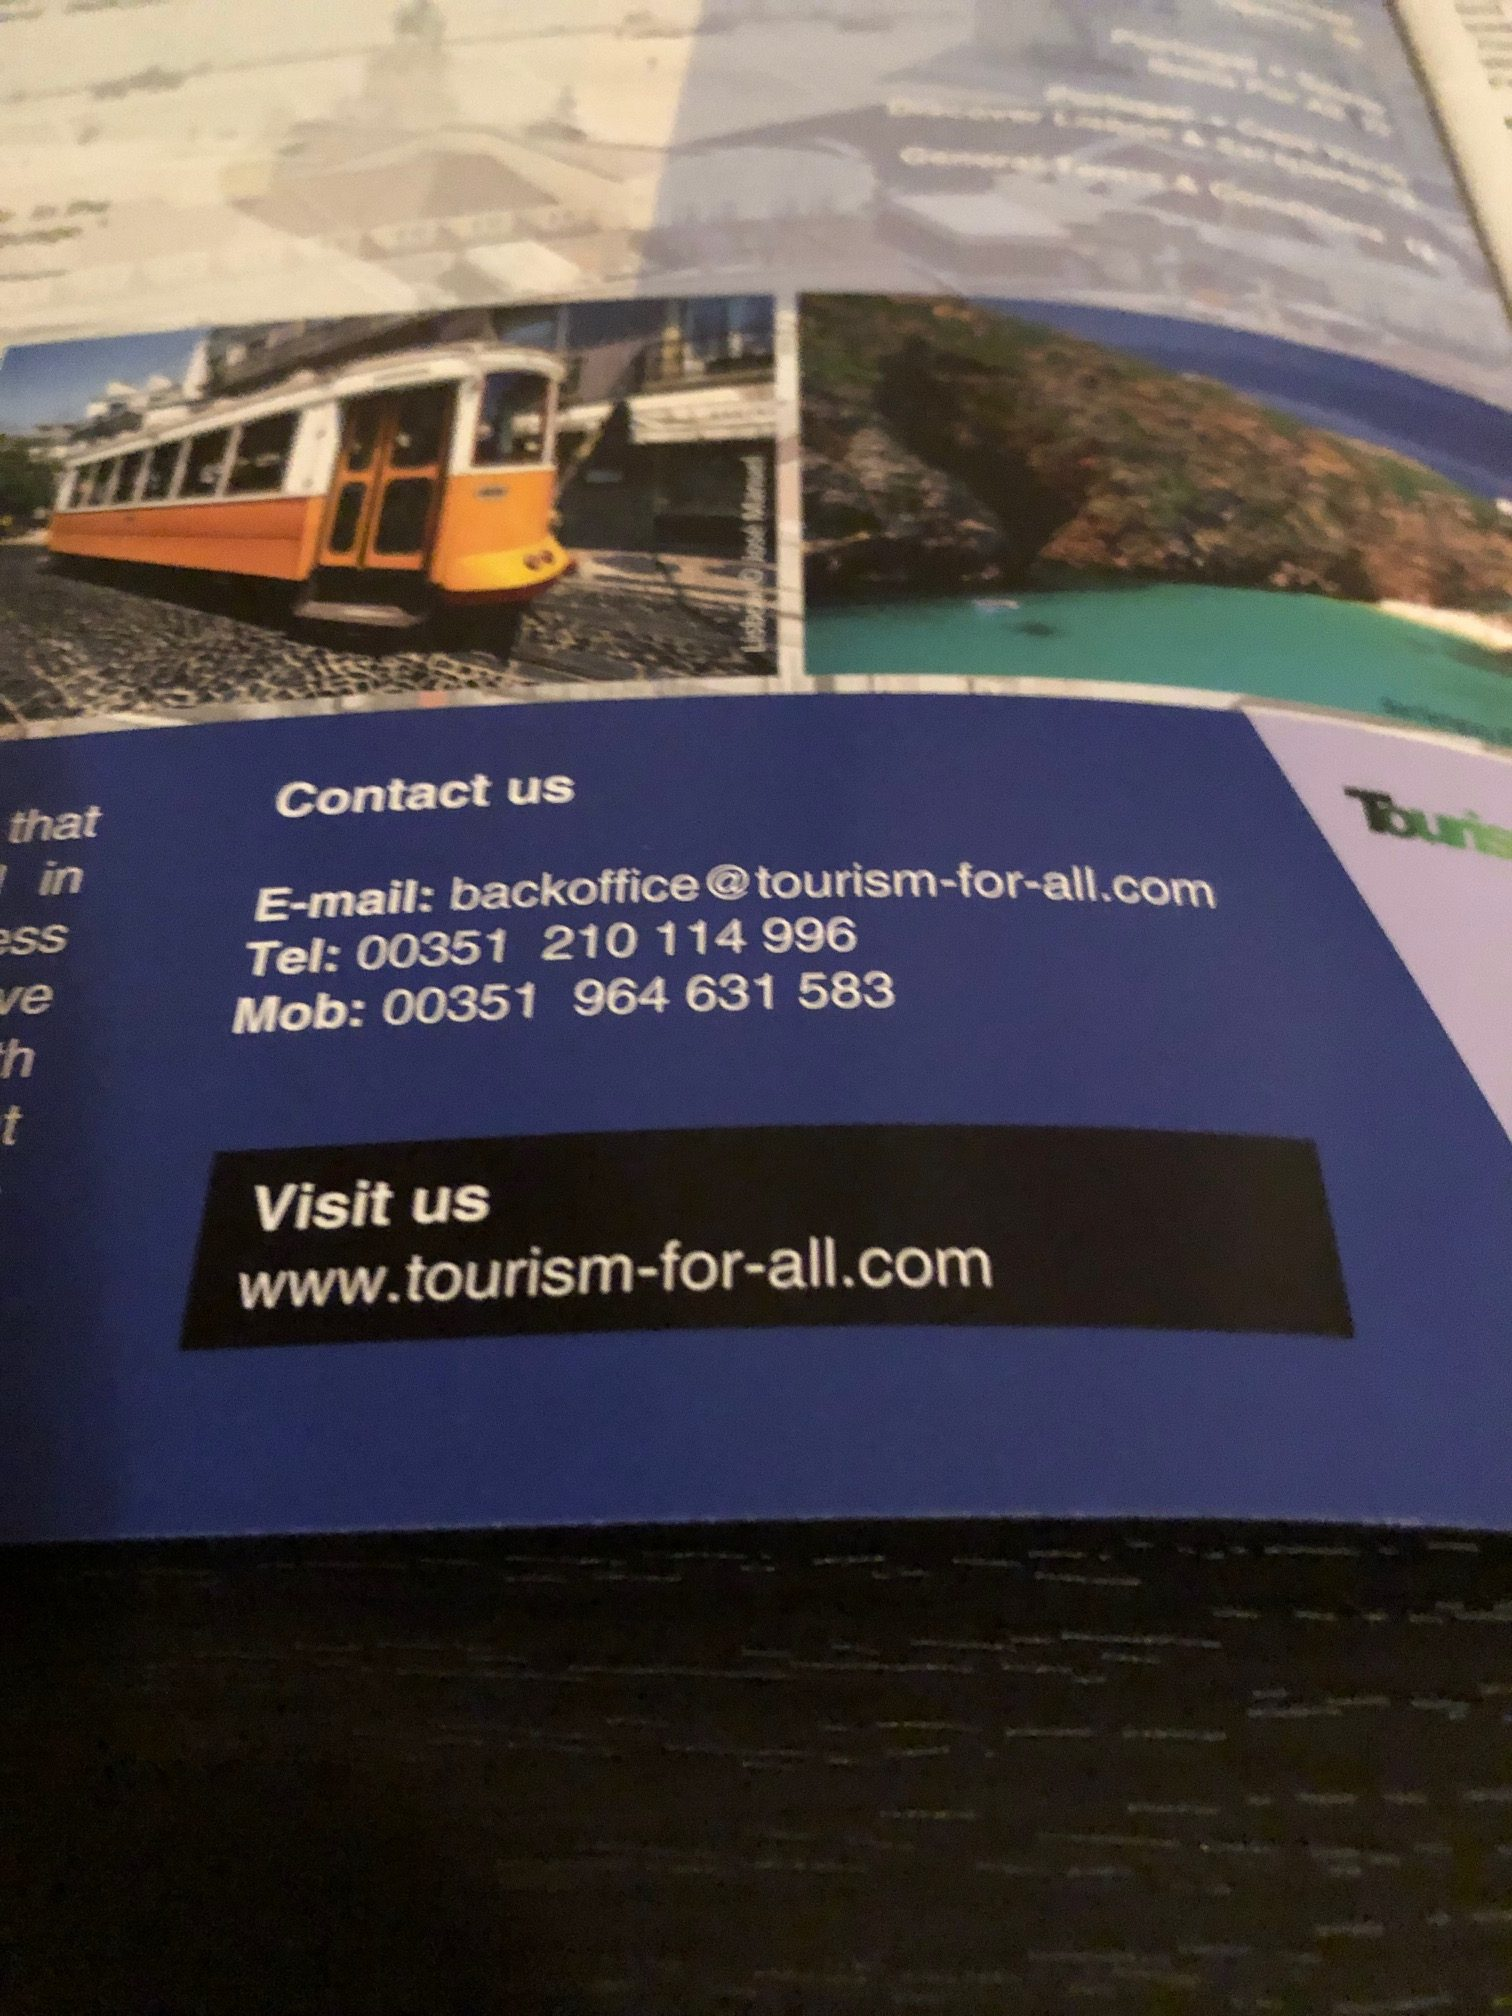 Tourism For All Contact